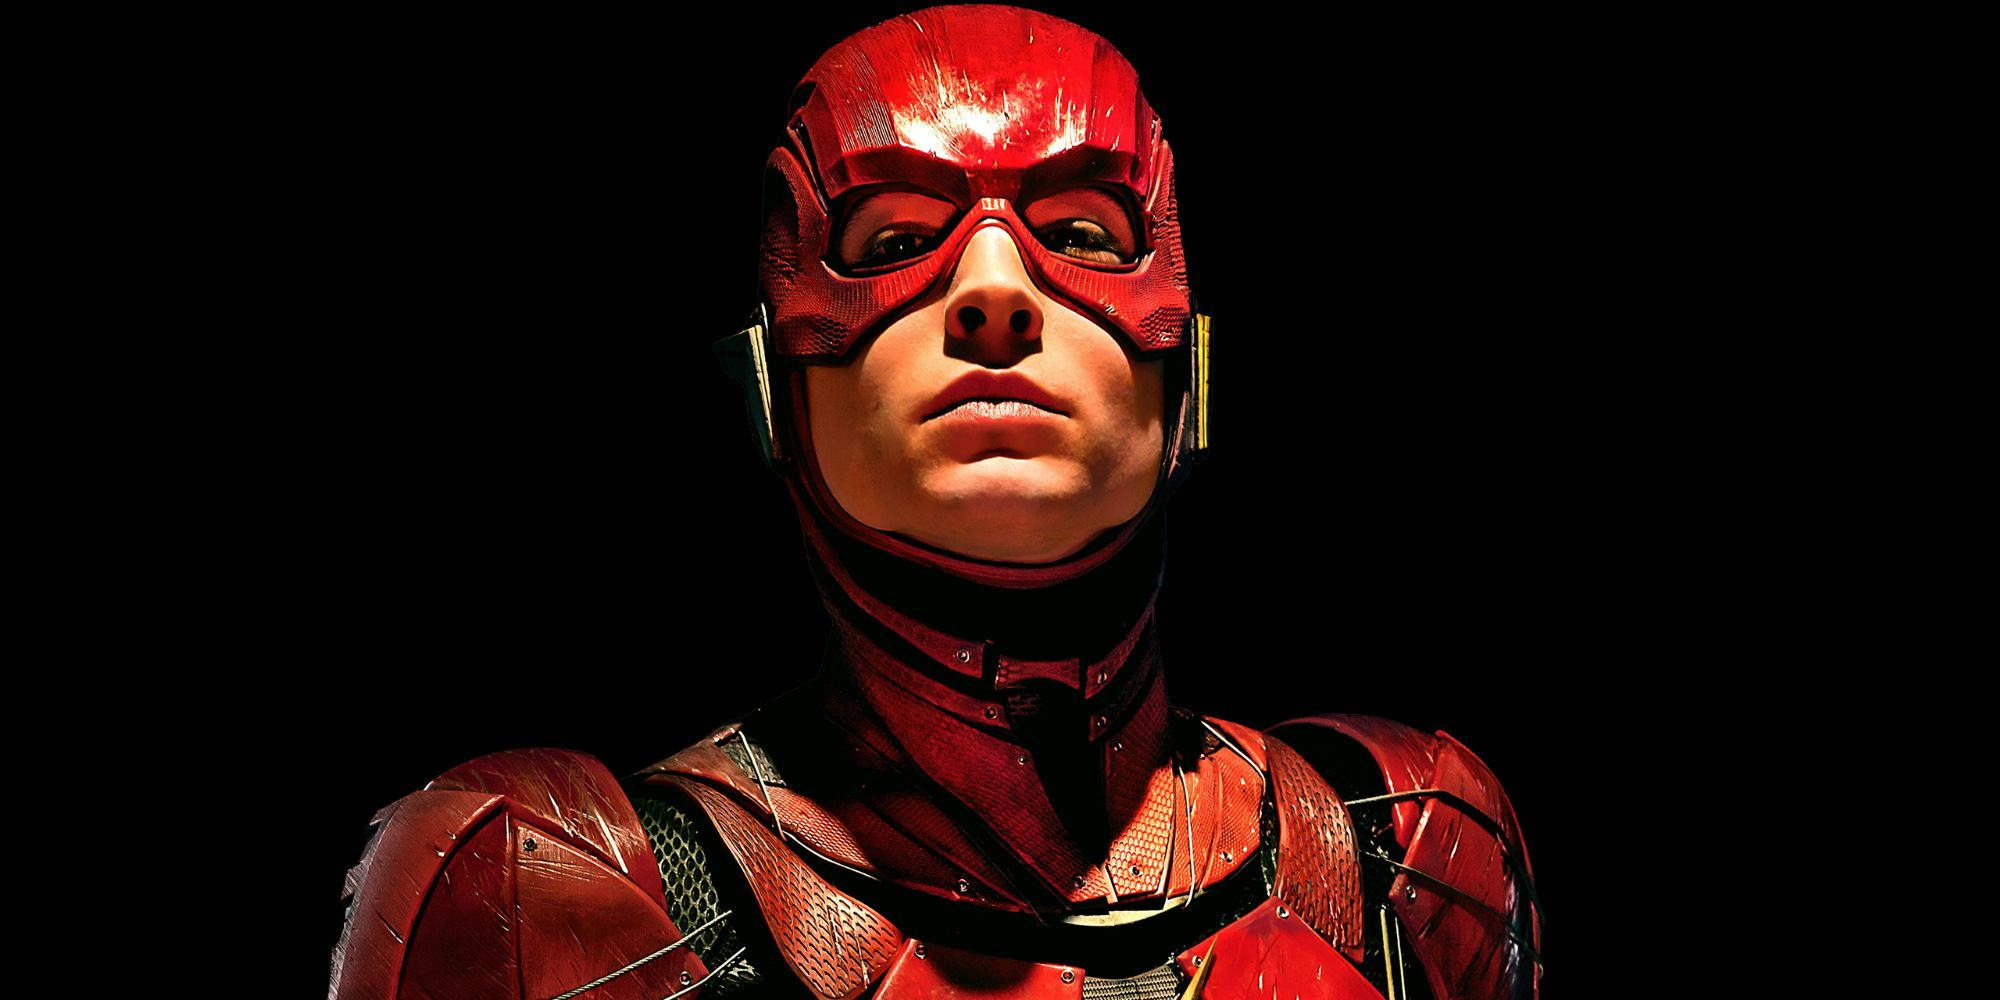 WB May Recast Flash, Ezra Miller Writing His Own Script in Attempt to Keep Role